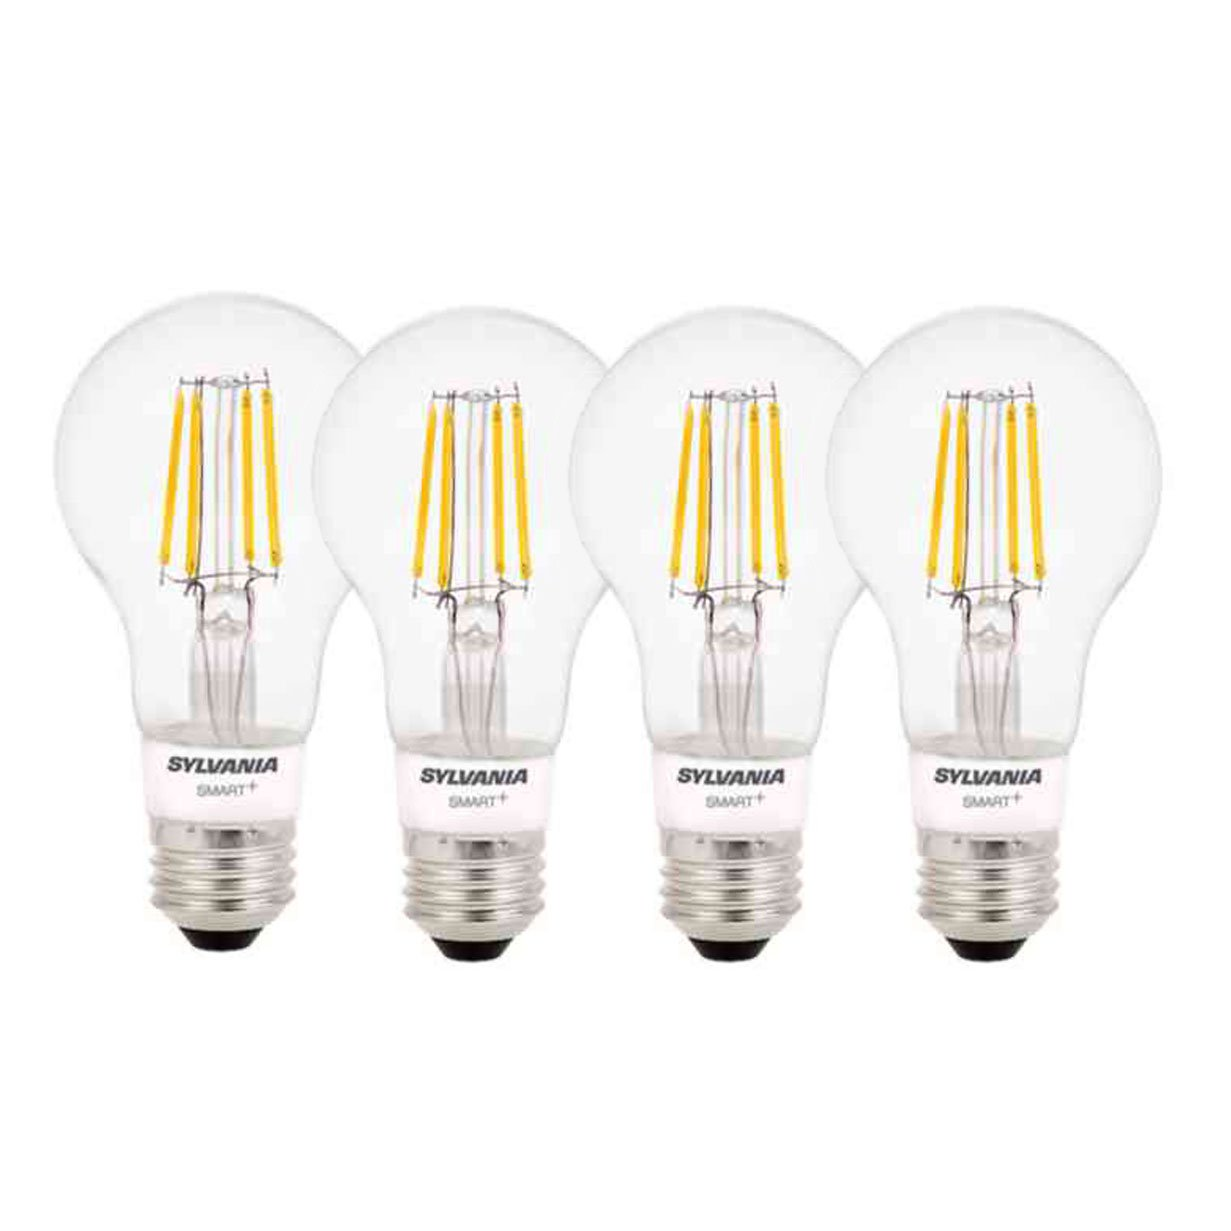 Sylvania Smart+ Home Bluetooth Soft White Dimmable A19 LED Light Bulb (4 Pack)